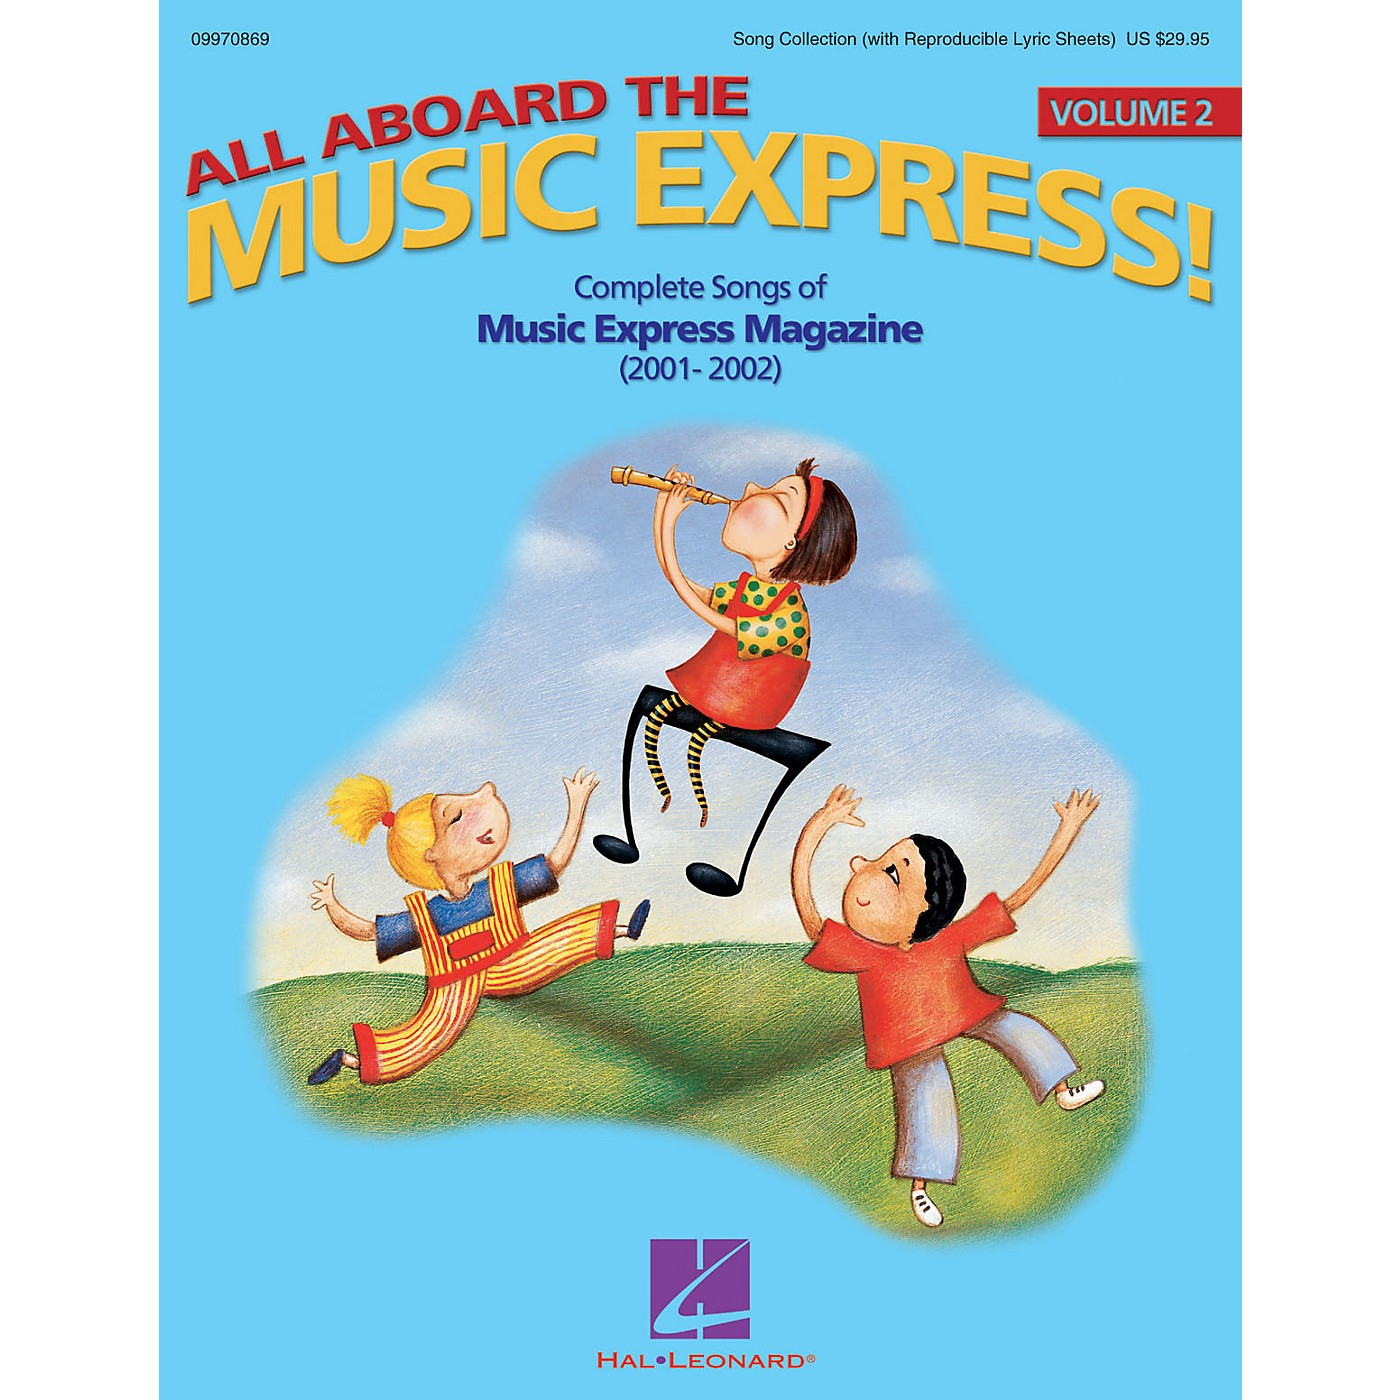 Hal Leonard All Aboard the Music Express Vol. 2 (Complete Songs of Music Express Magazine 2001-2002) ShowTrax CD thumbnail